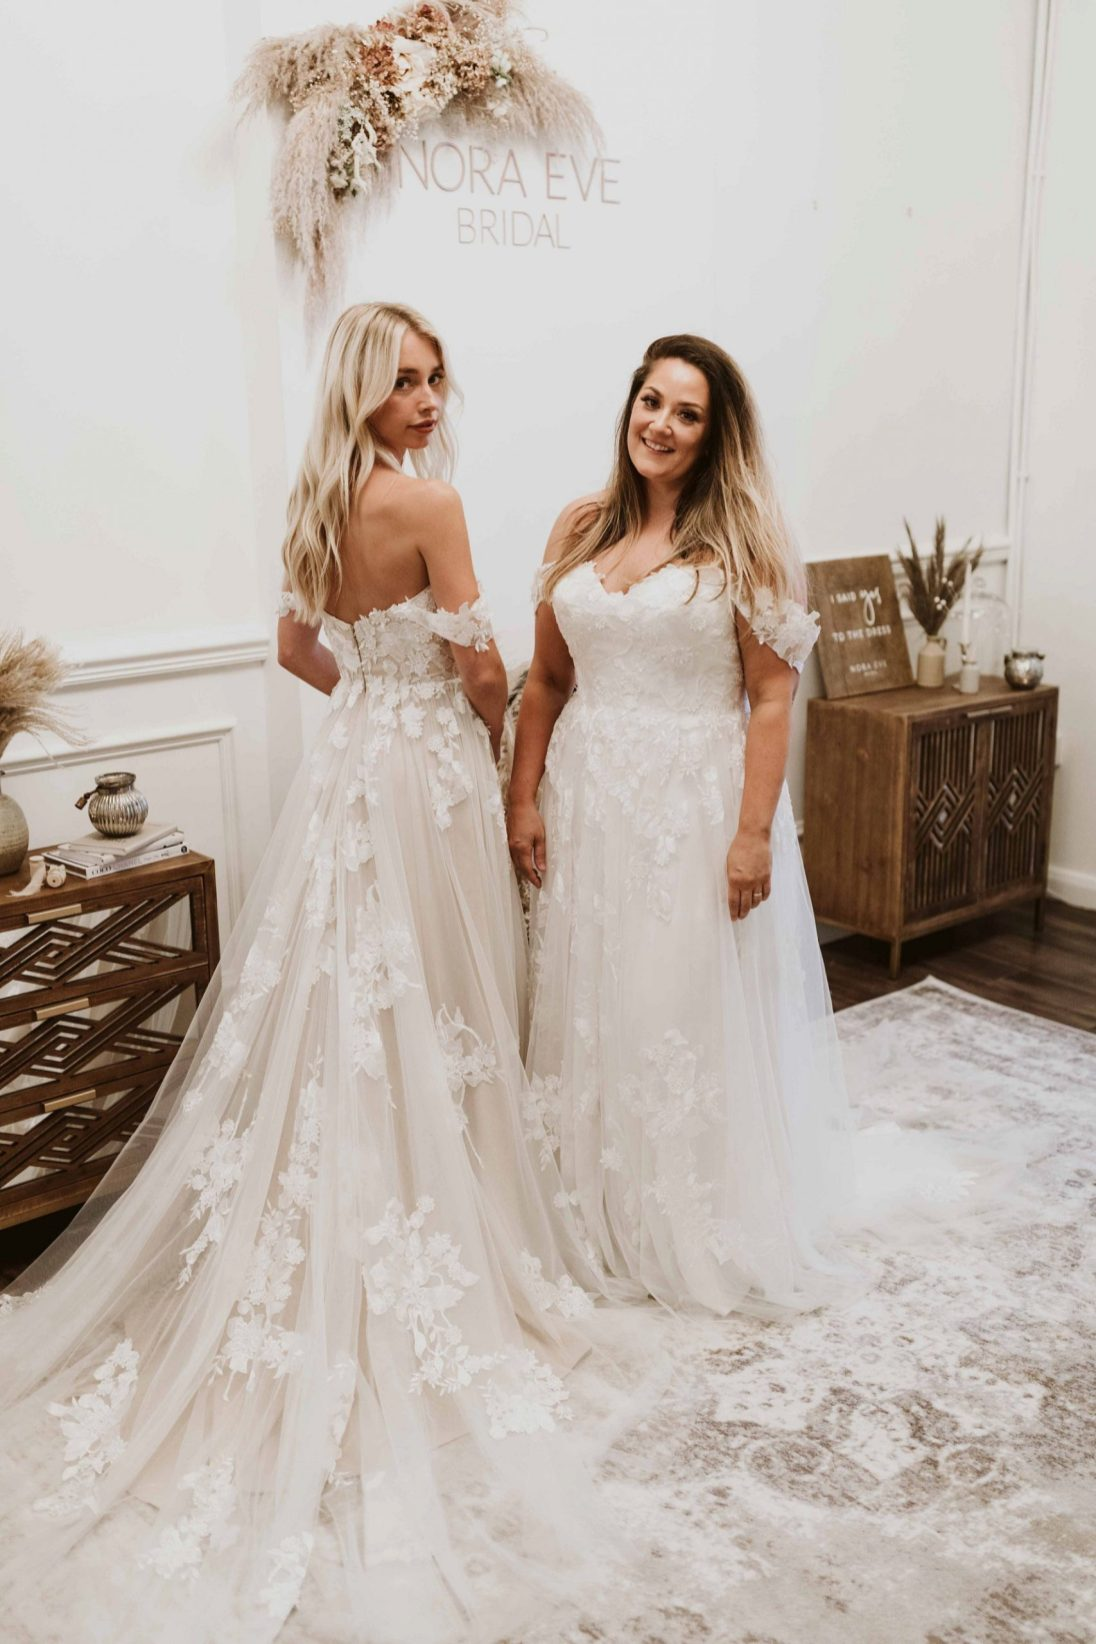 Nora Eve Award Winning Bridal Boutique Chesterfield (30)